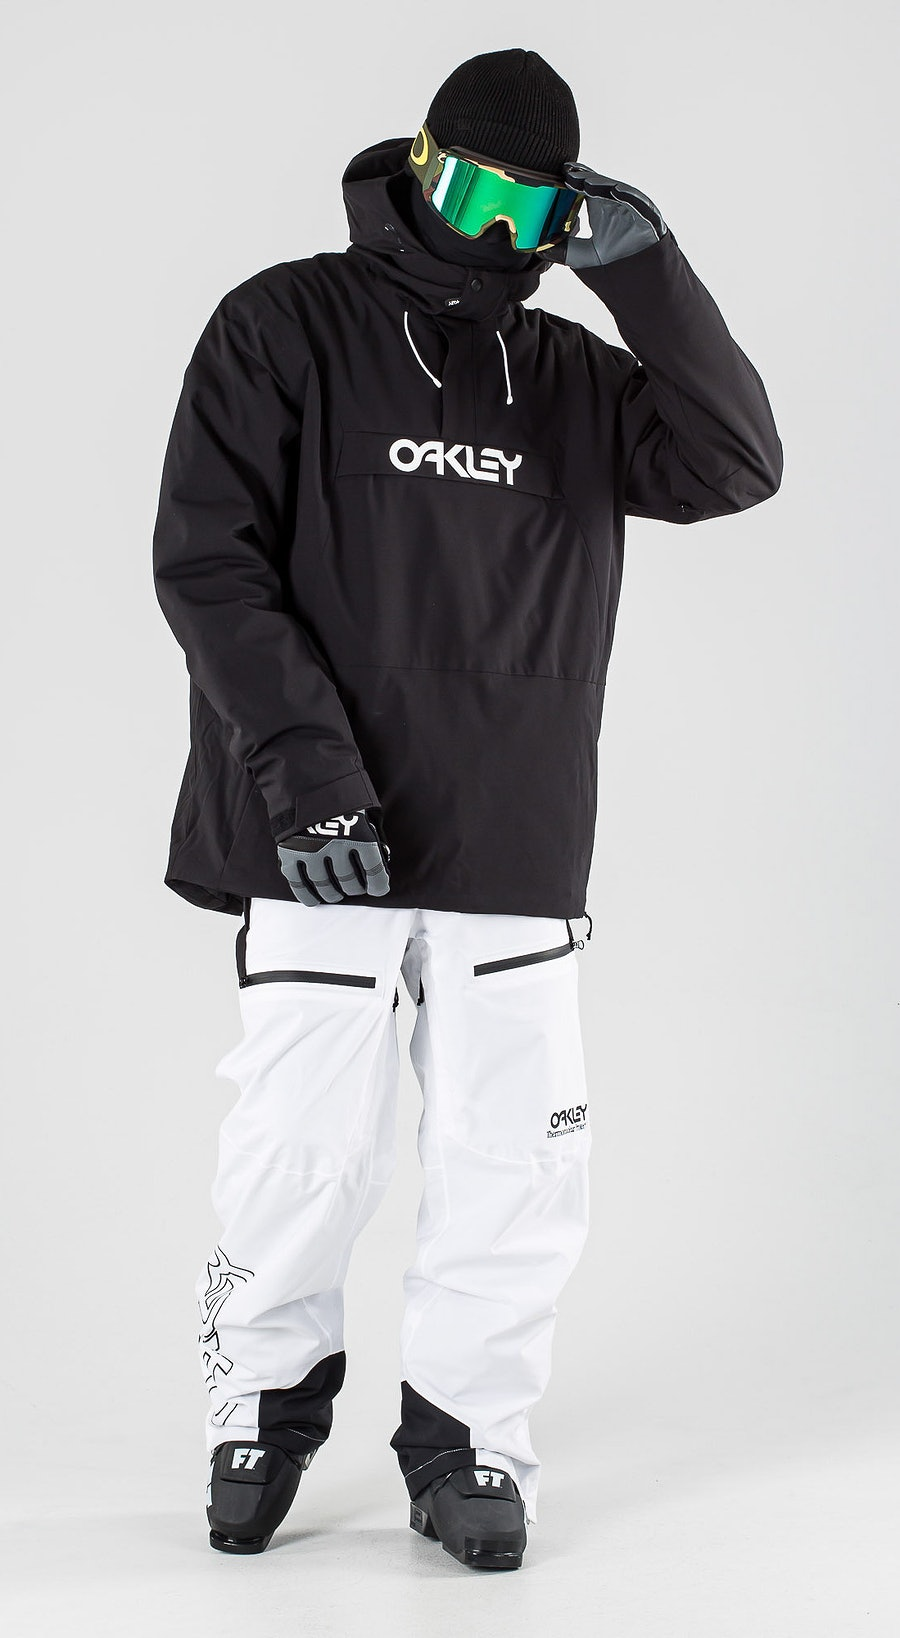 Oakley Insulated Anorak Blackout Ski Clothing Multi